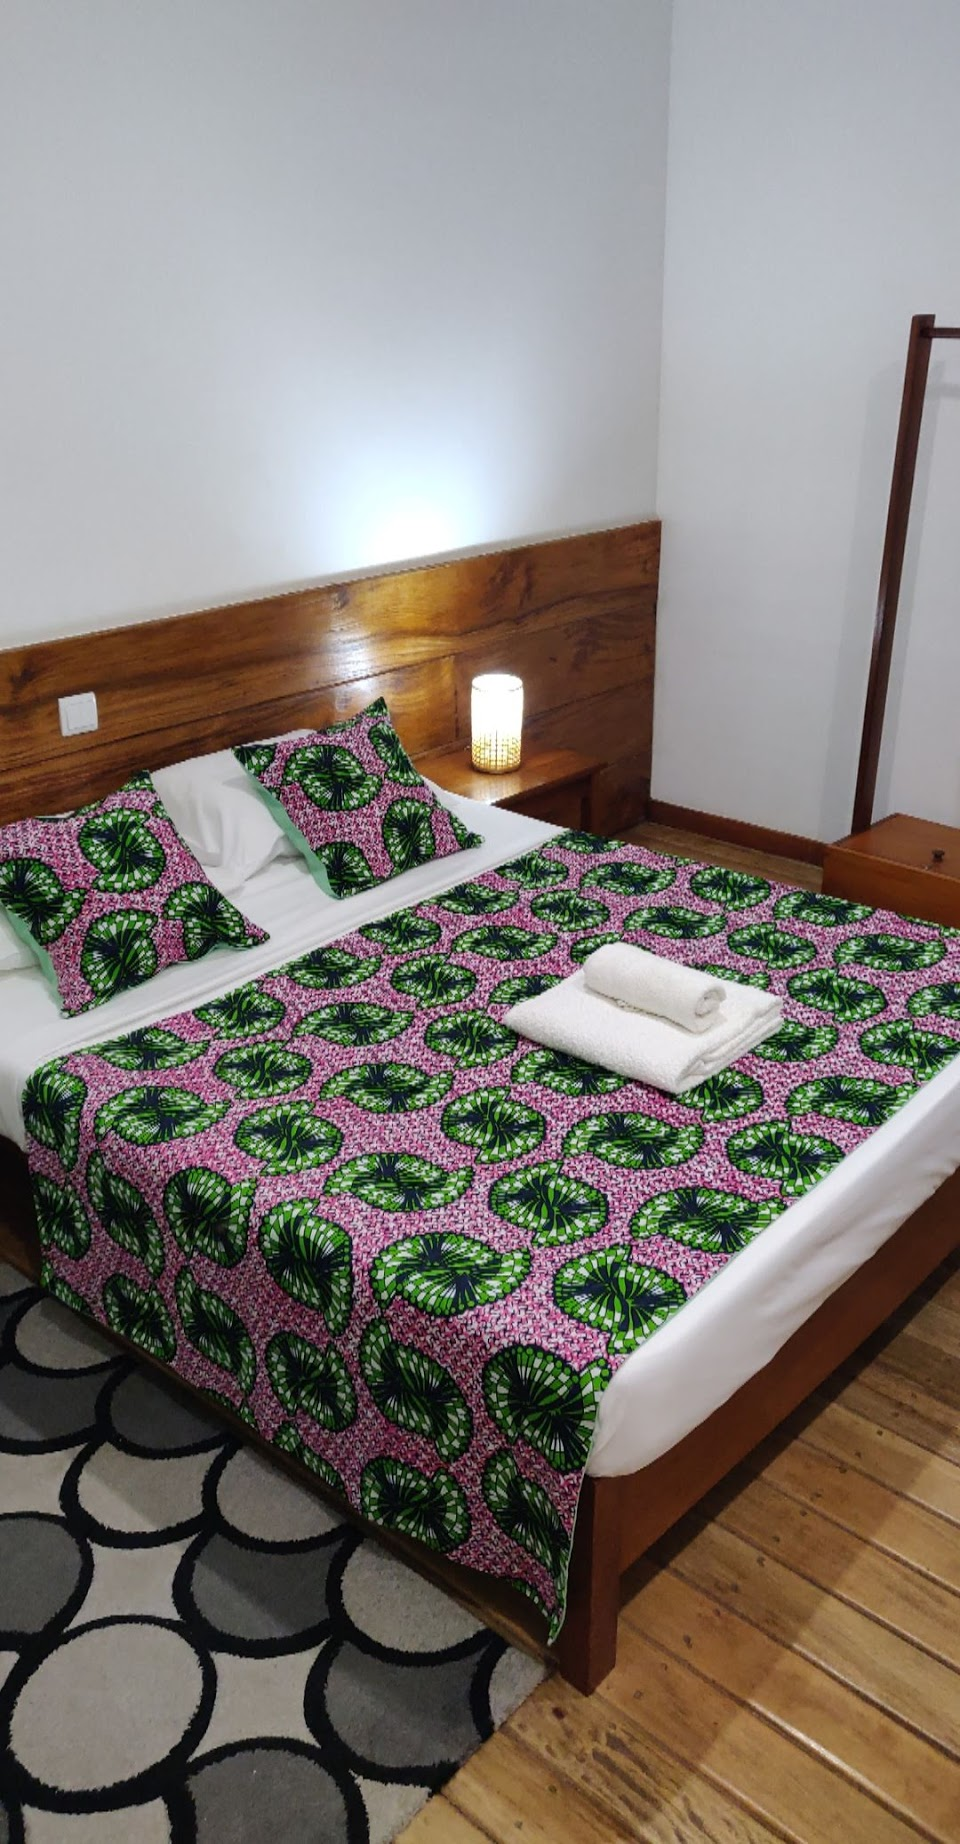 Where to stay in Sao Tome - Sweet Guesthouse